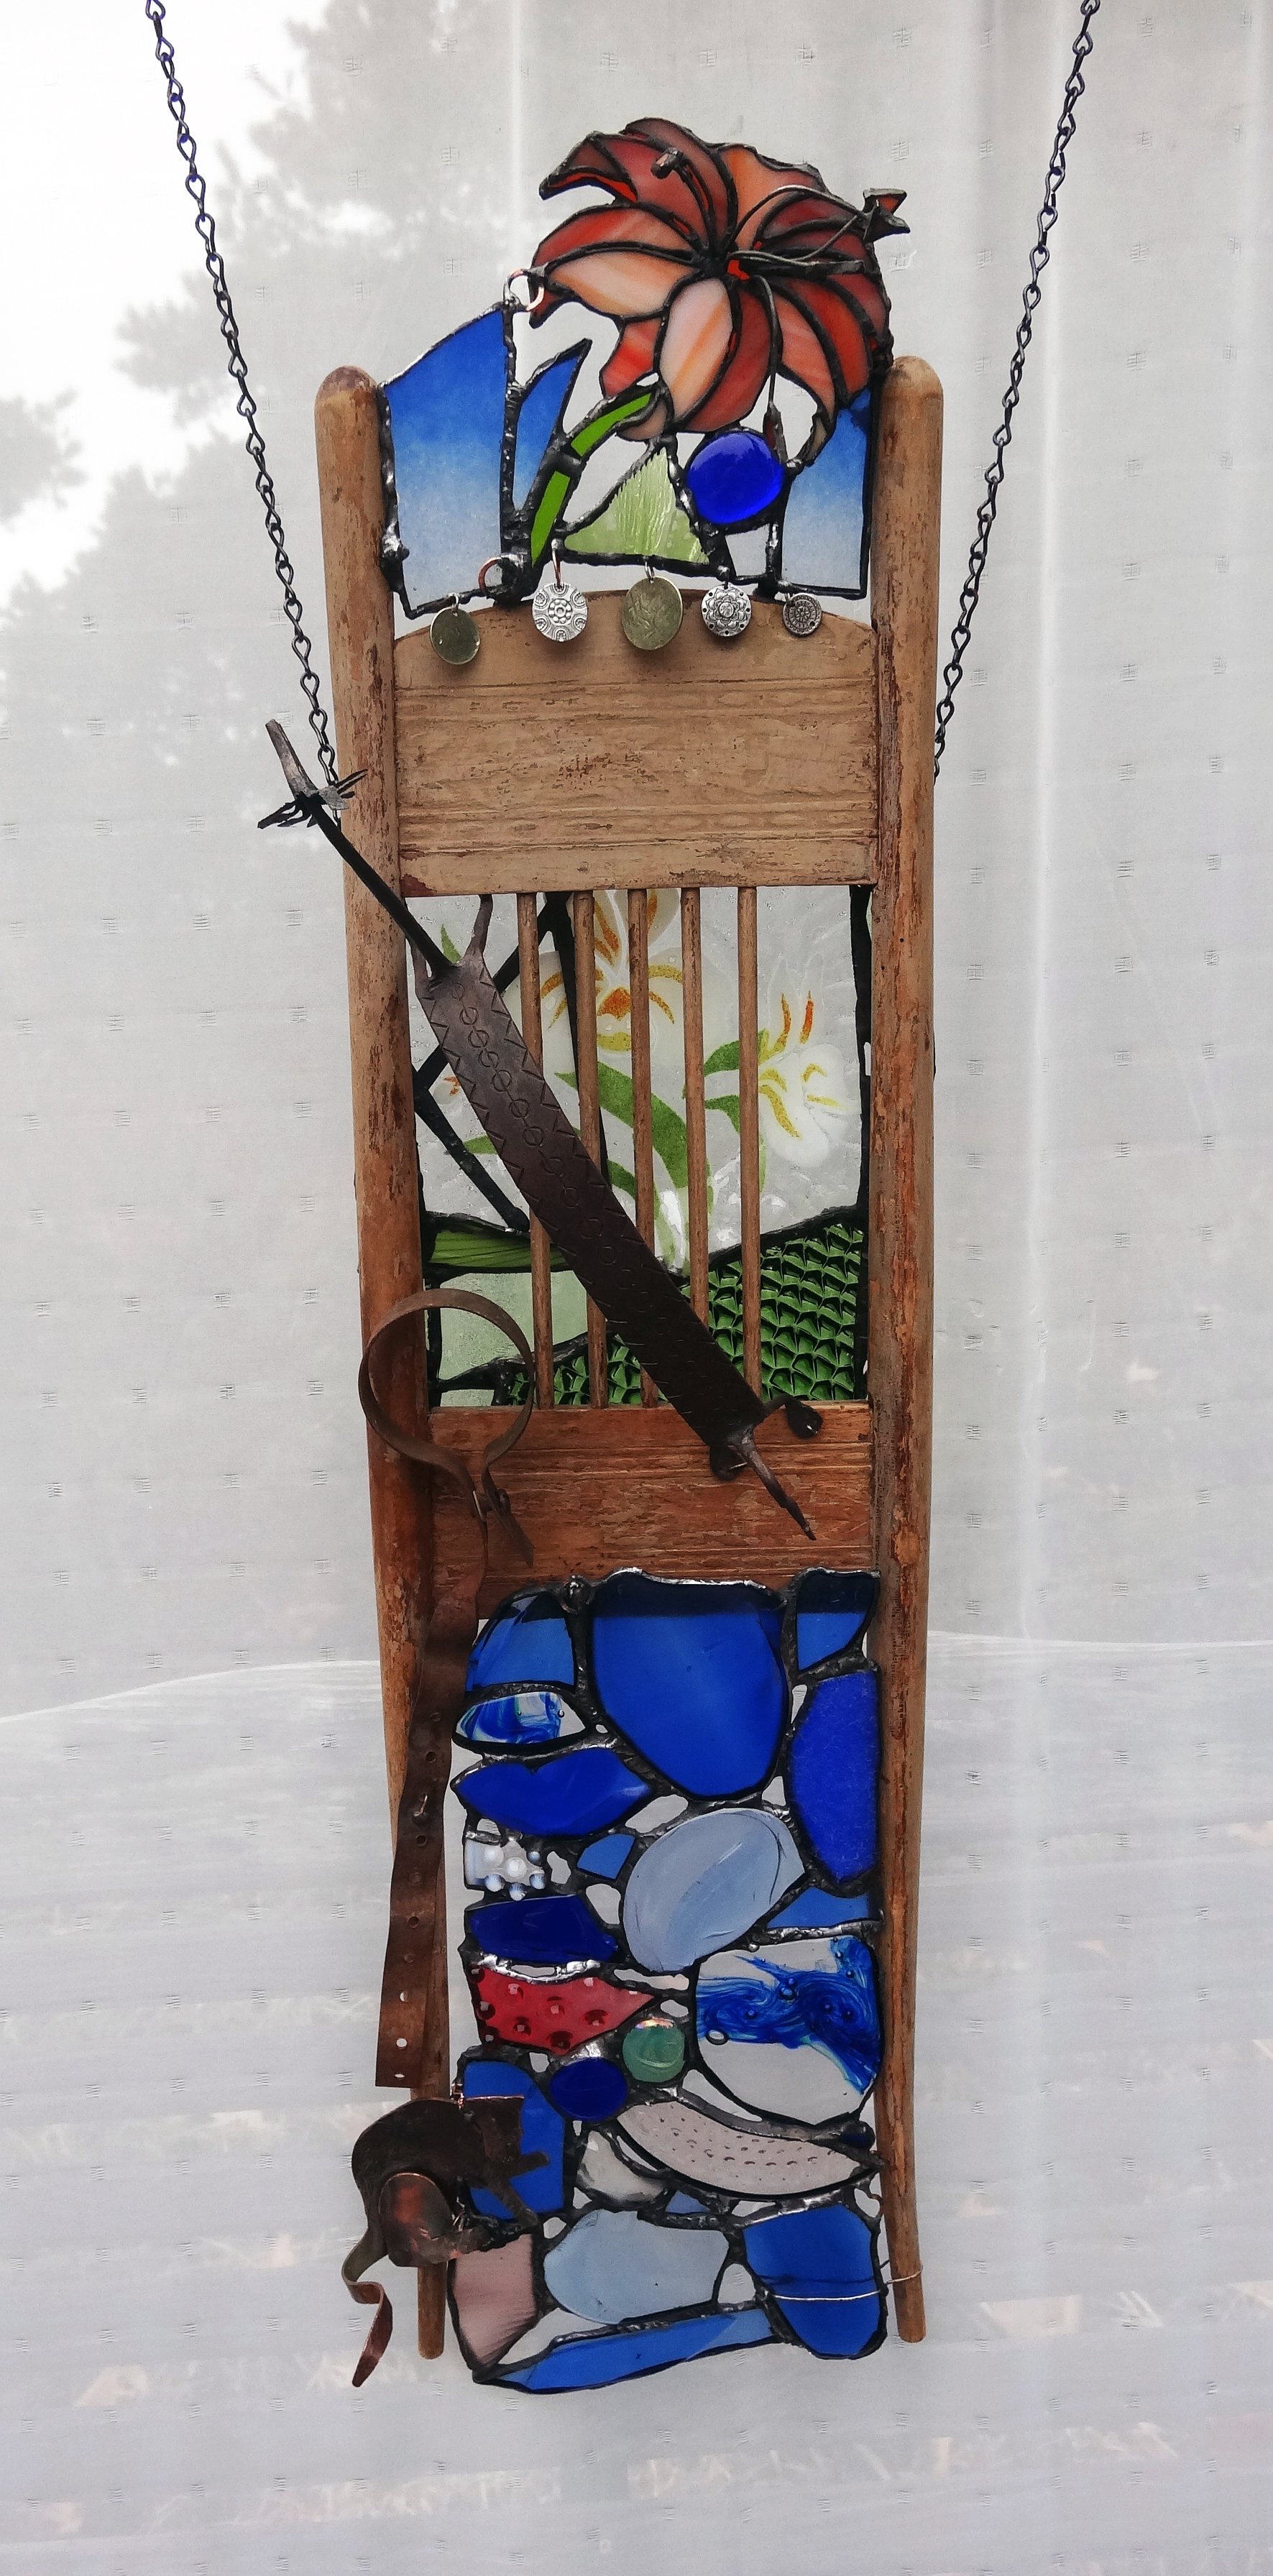 "FREE FROM CAPTIVITY ~ 36""x10"" Repurposed wood, glass and metals"